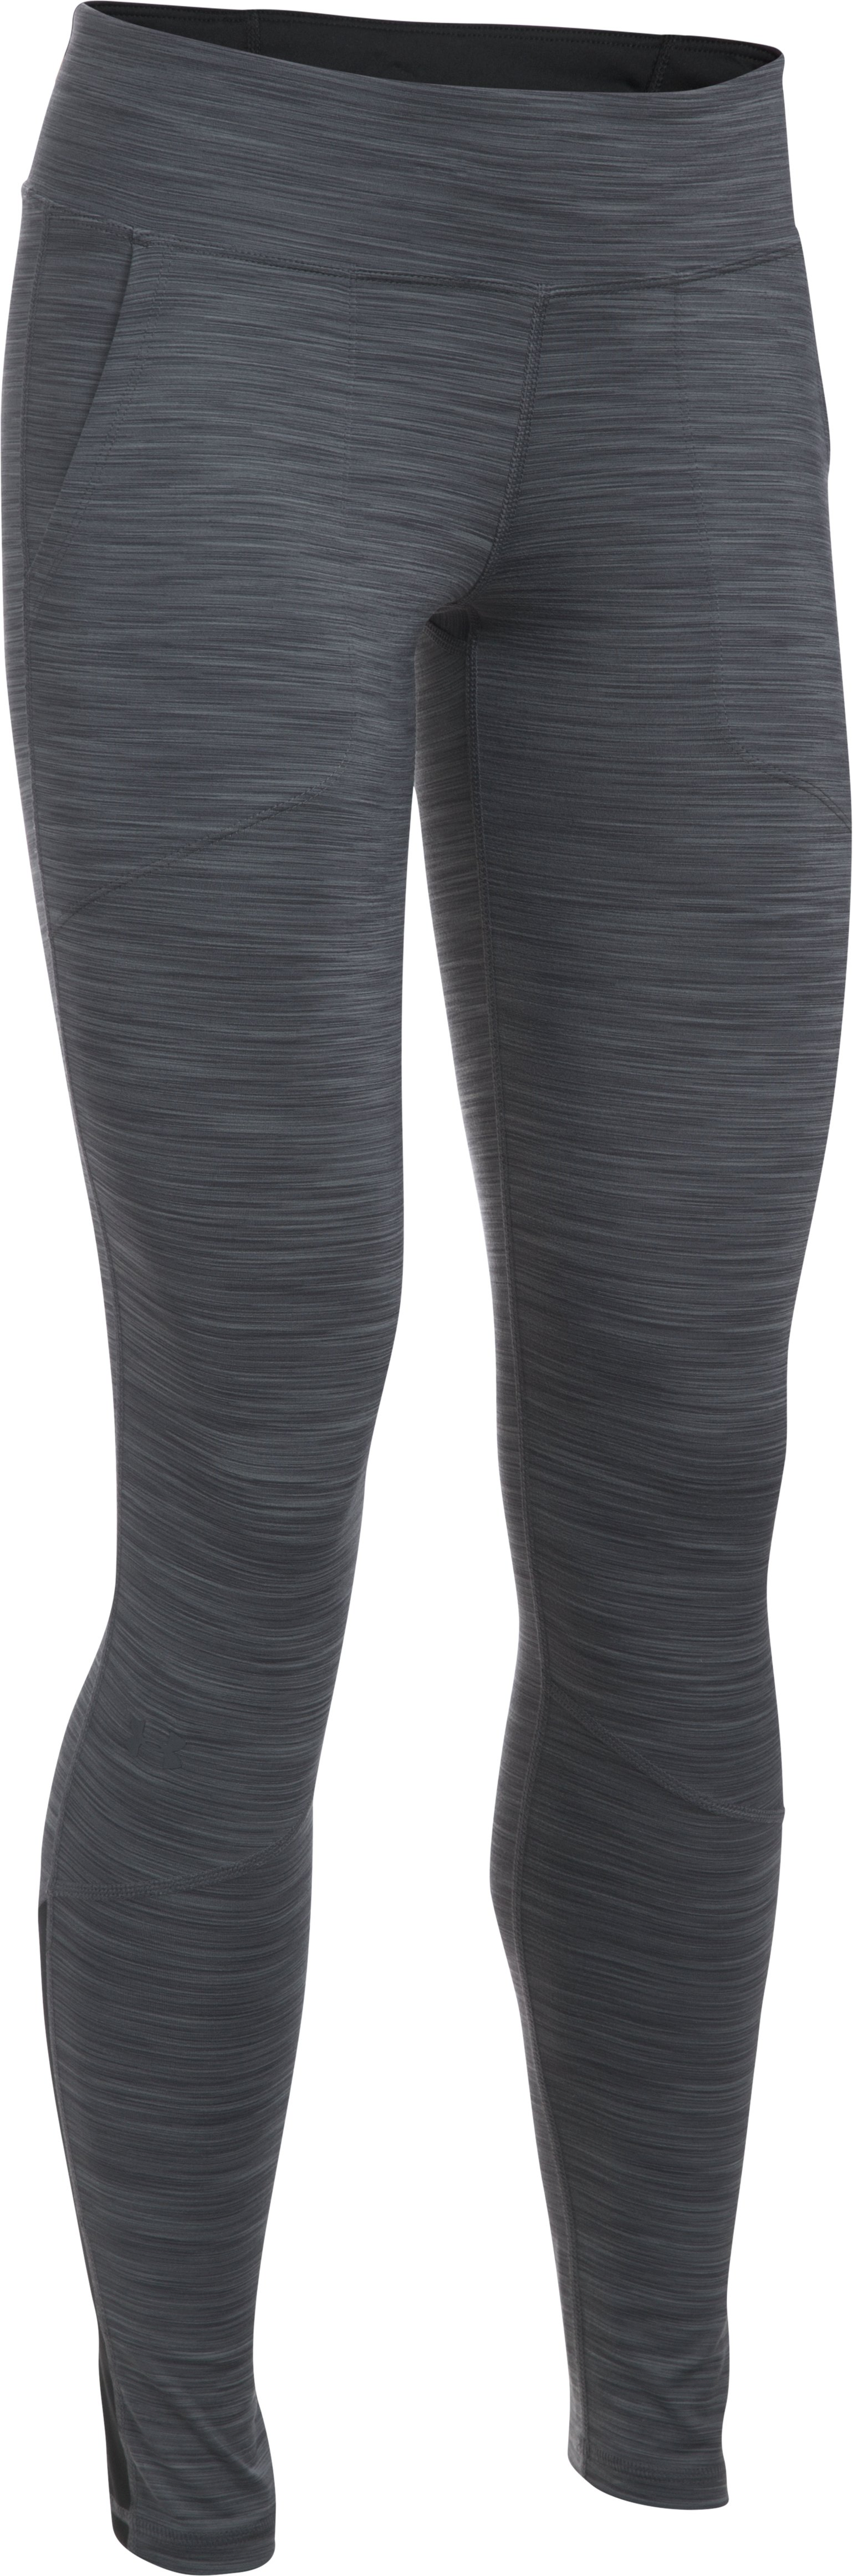 Women's UA Links Leggings, RHINO GRAY, undefined